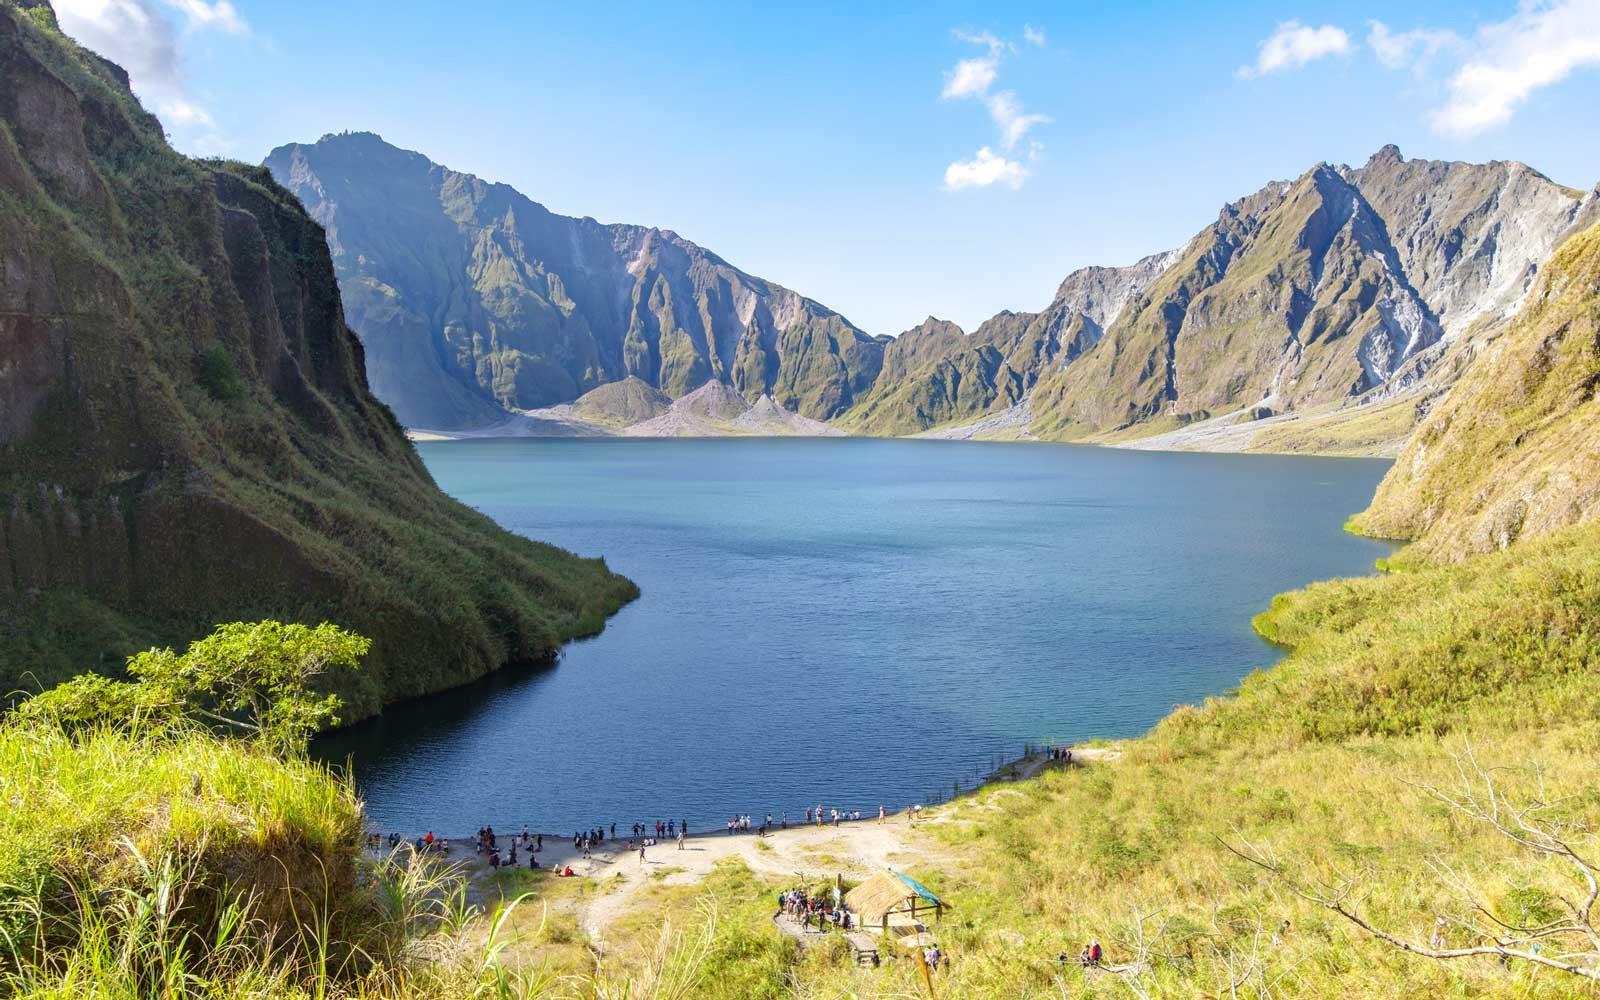 Beautiful landscape at Pinatubo Mountain Crater Lake